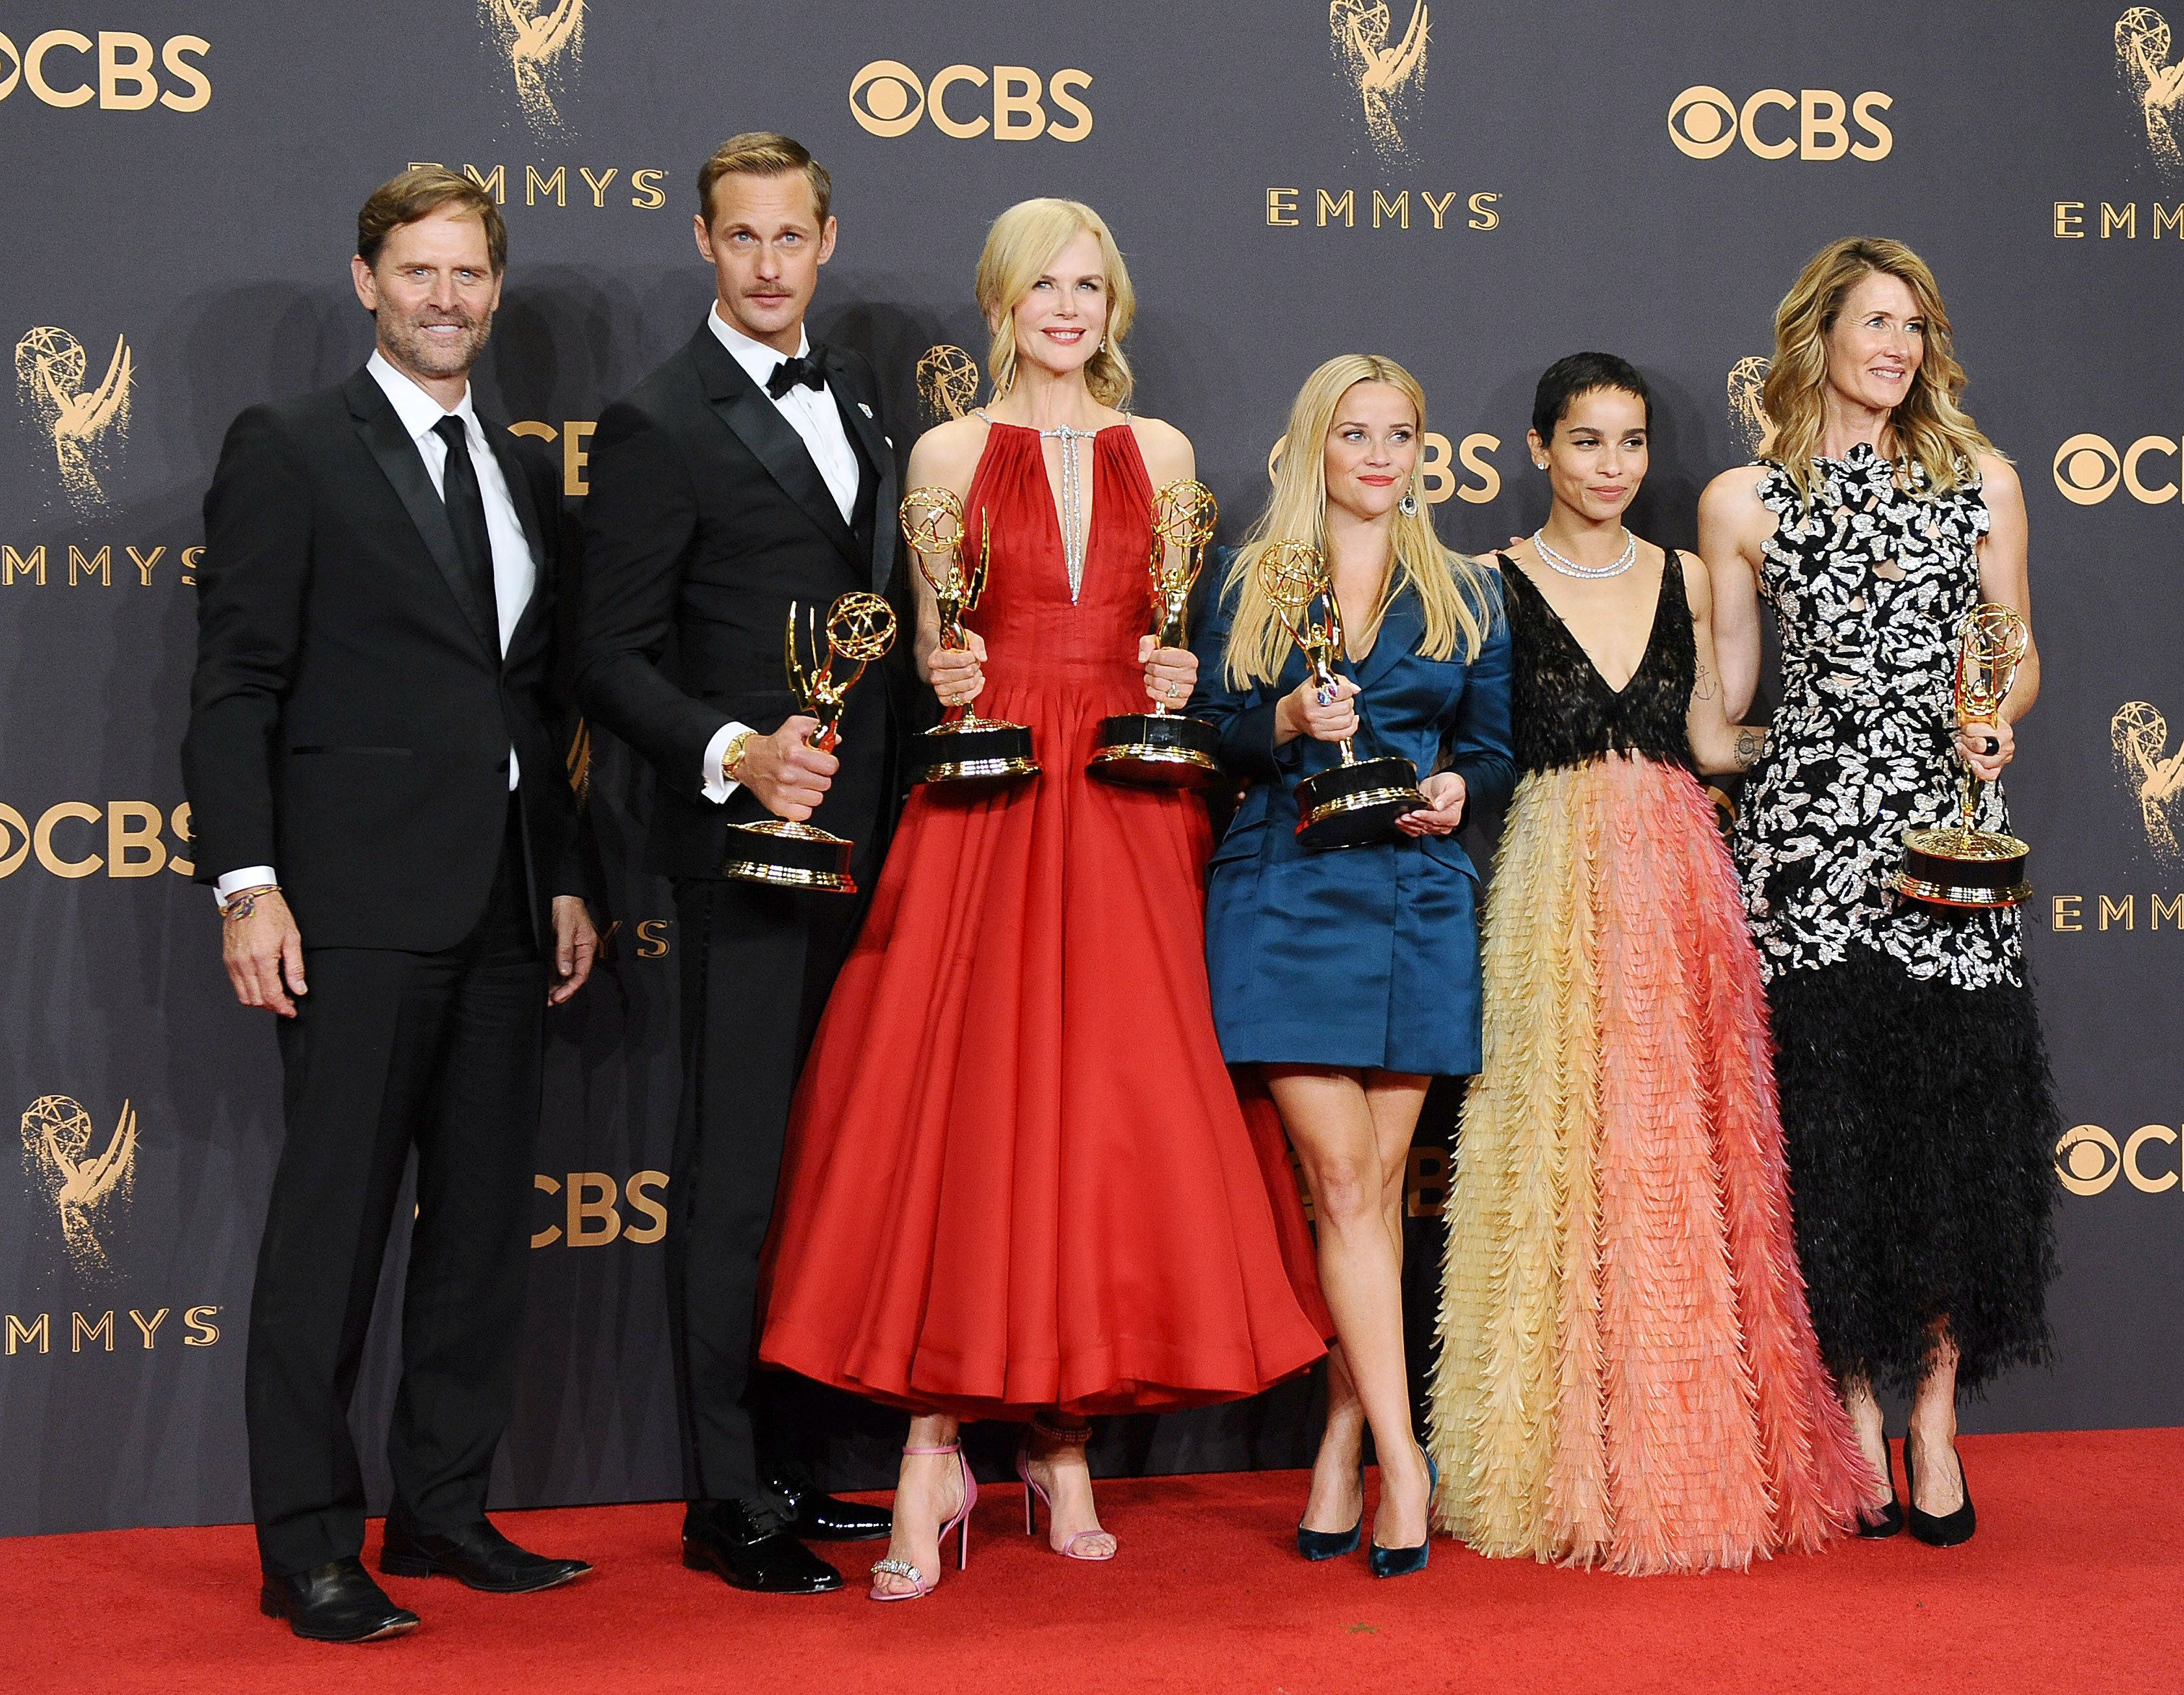 LOS ANGELES, CA - SEPTEMBER 17:  (L-R) Actors Jeffrey Nordling, Alexander Skarsgard, Nicole Kidman, Reese Witherspoon, Zoe Kravitz and Laura Dern, winners of Outstanding Limited Series for 'Big Little Lies', pose in the press room at the 69th annual Primetime Emmy Awards at Microsoft Theater on September 17, 2017 in Los Angeles, California.  (Photo by Jason LaVeris/FilmMagic)